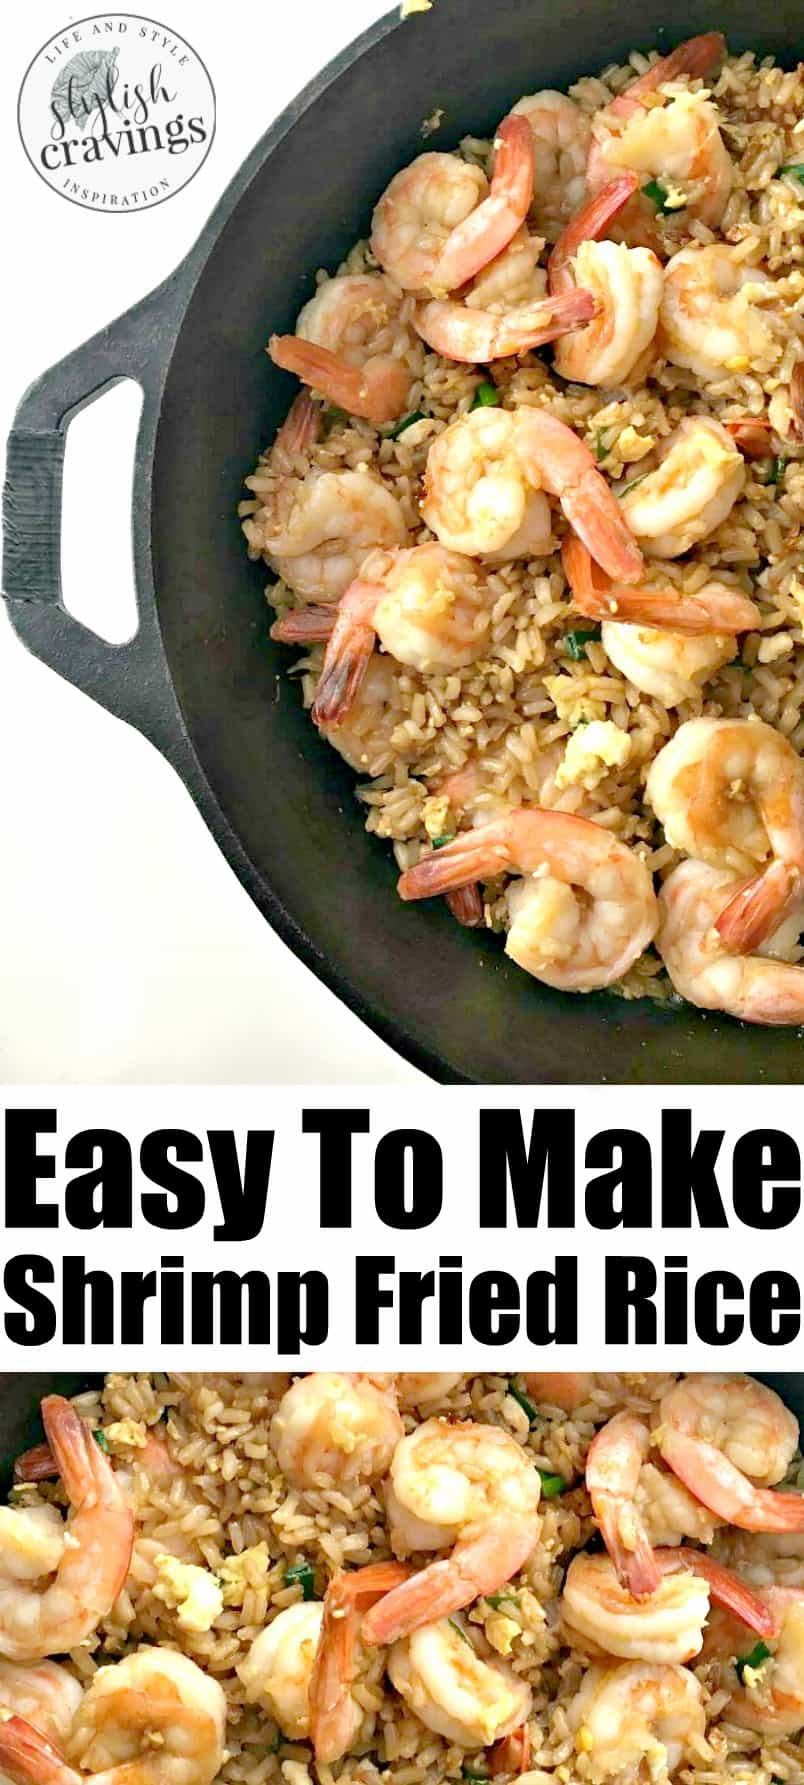 Easy Shrimp Fried Rice Recipe Stylish Cravings Recipes